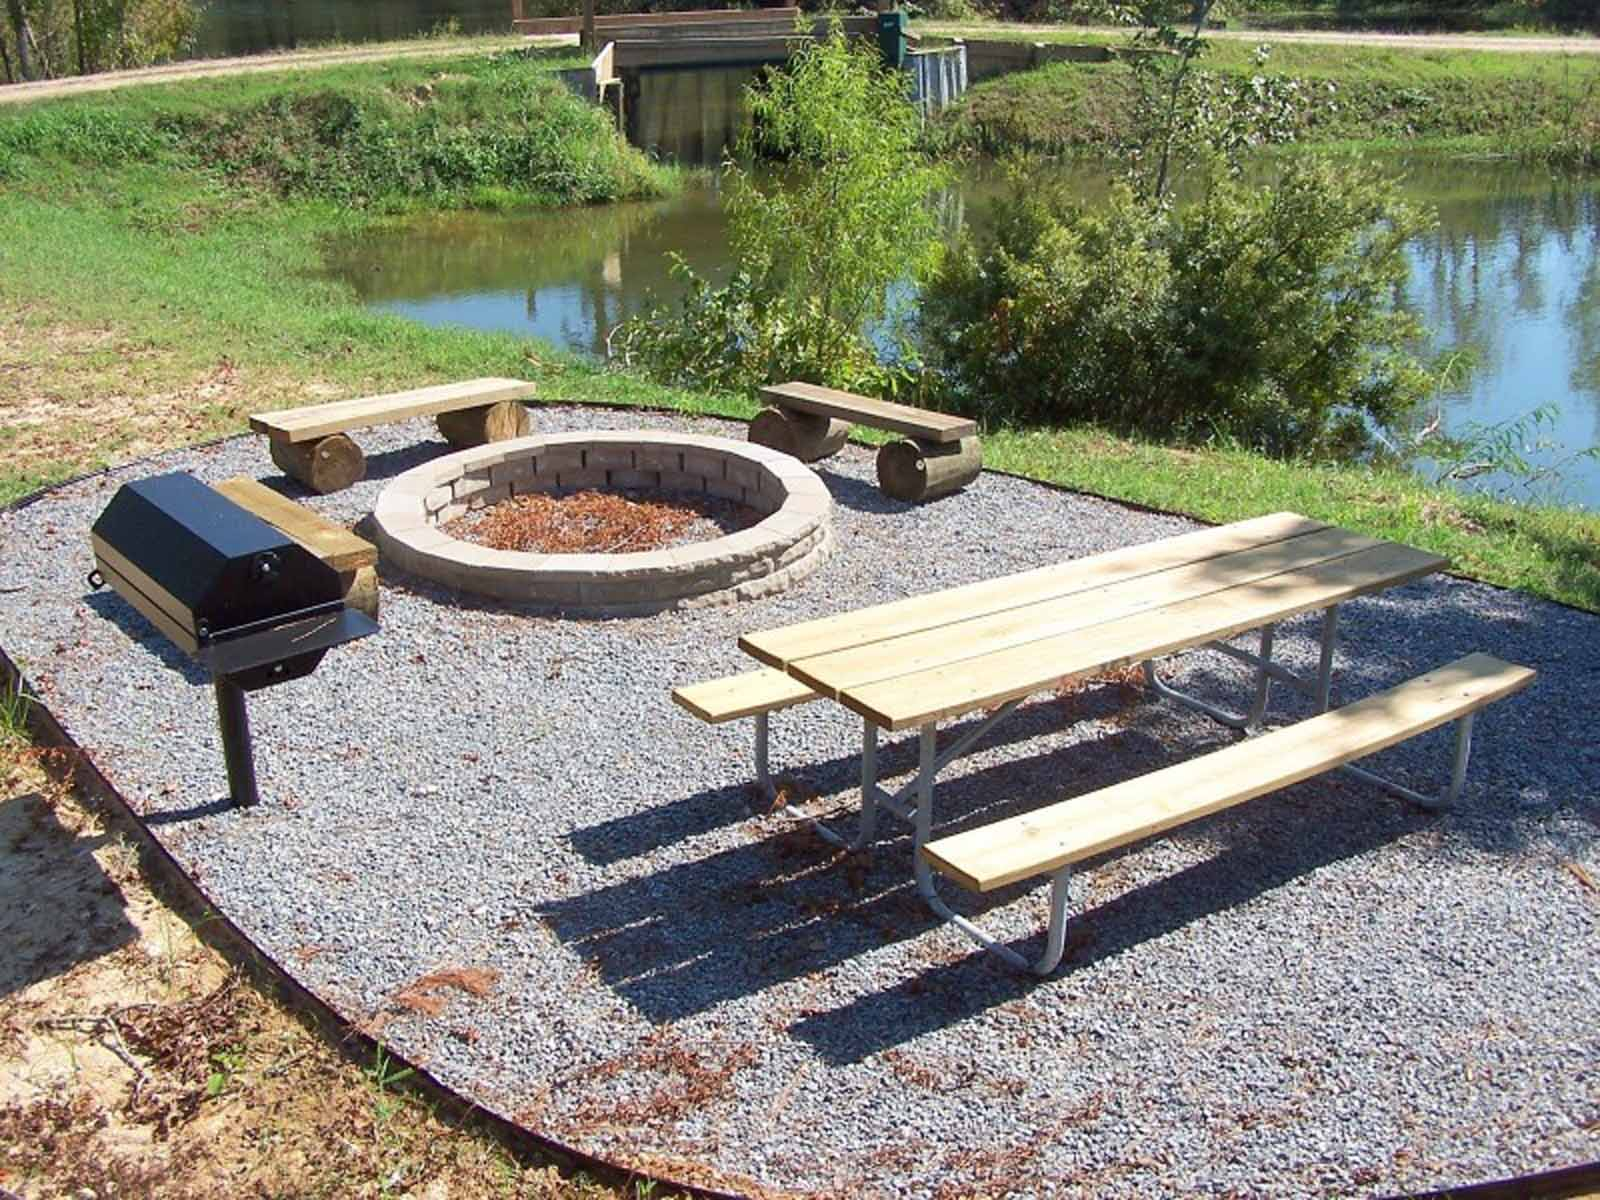 Grill and Fire Ring